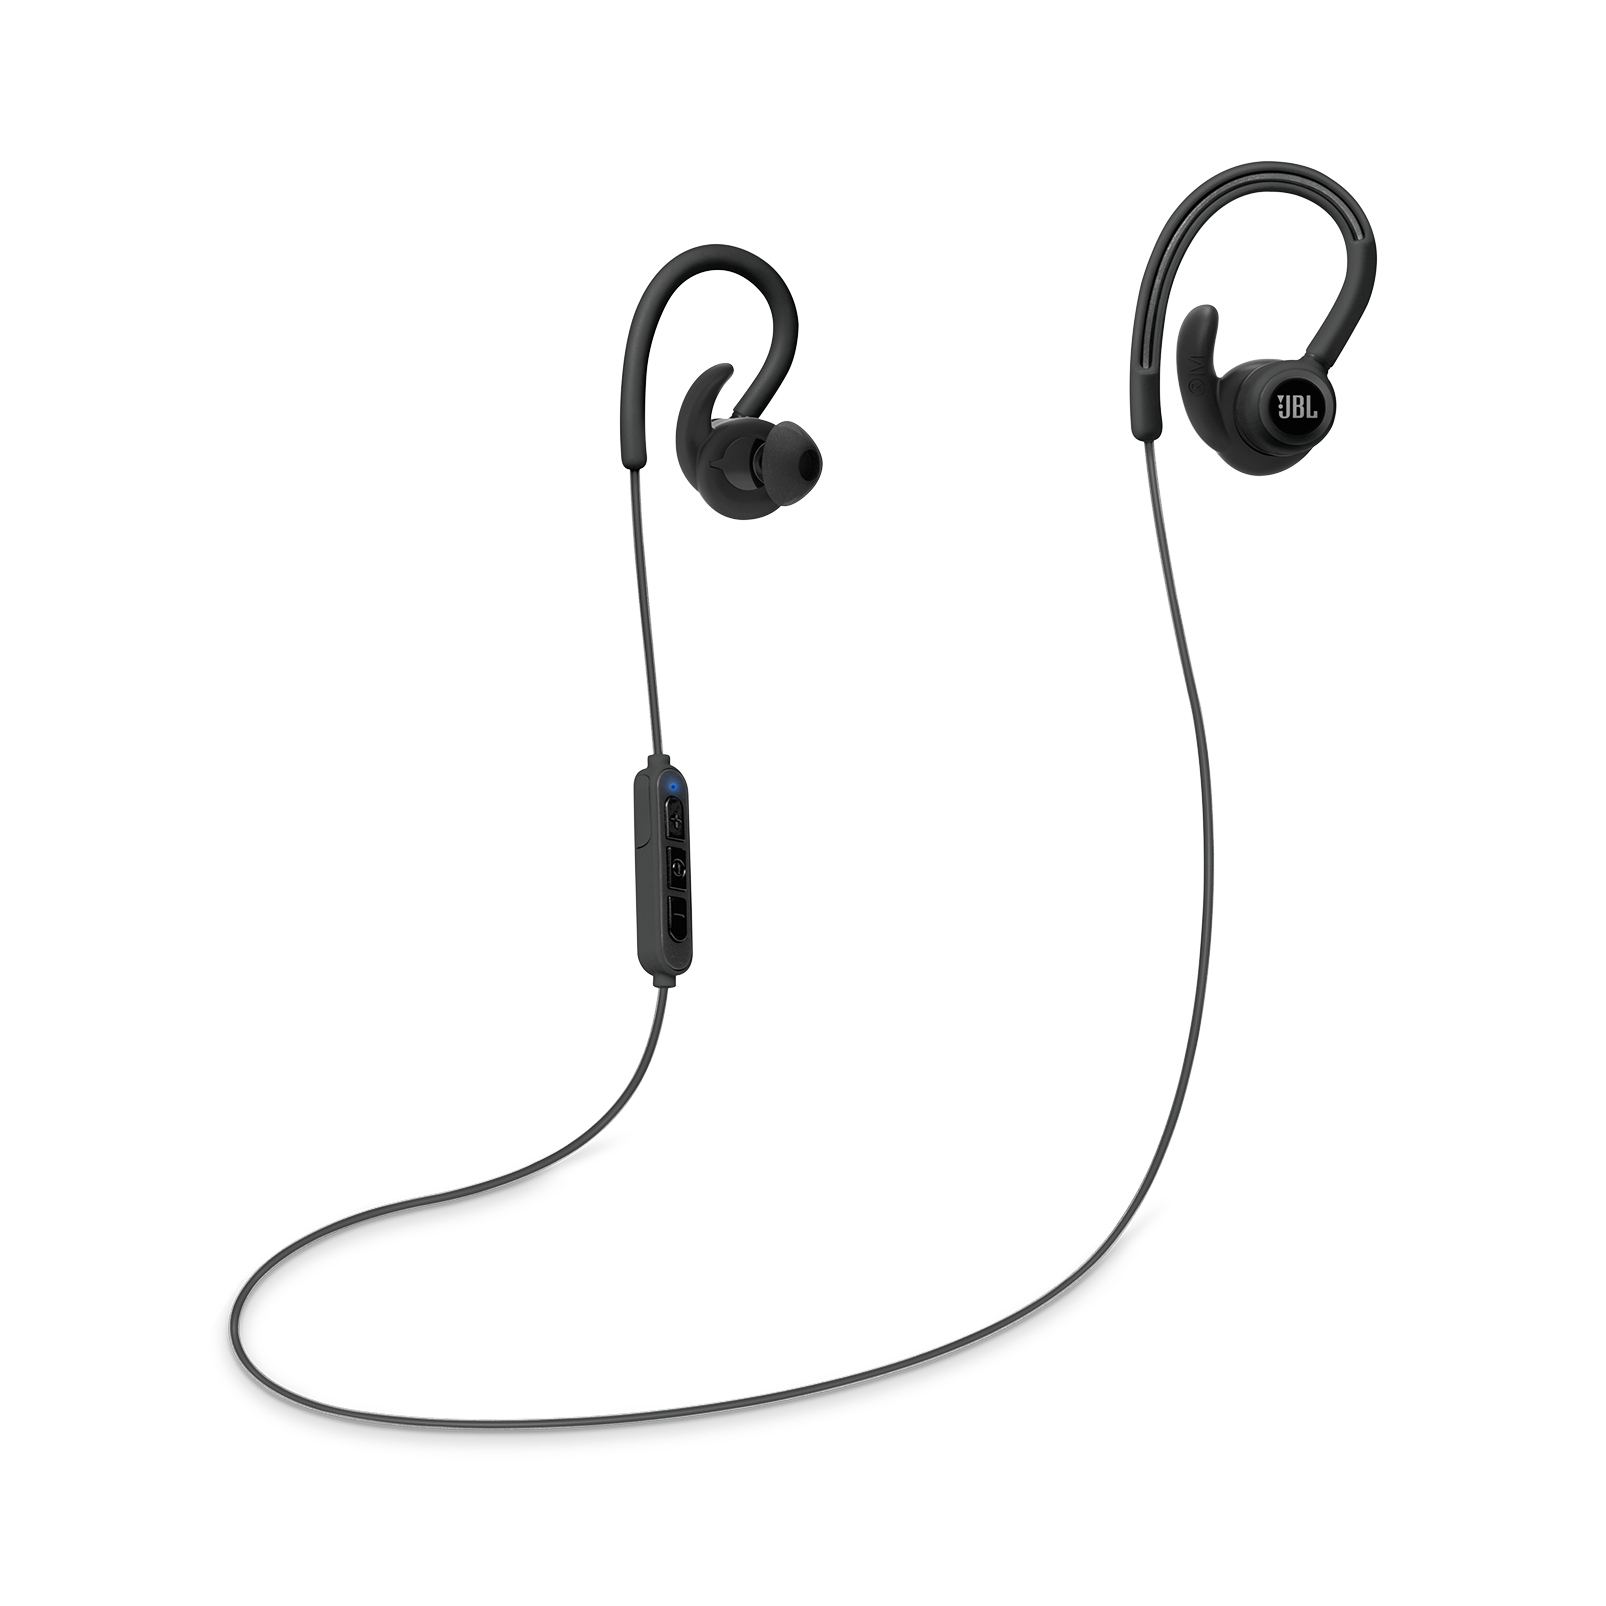 Reflect Contour Secure Fit Wireless Sport Headphones Comau Attachments Electricalwiringquestions 23638d1153994657diy